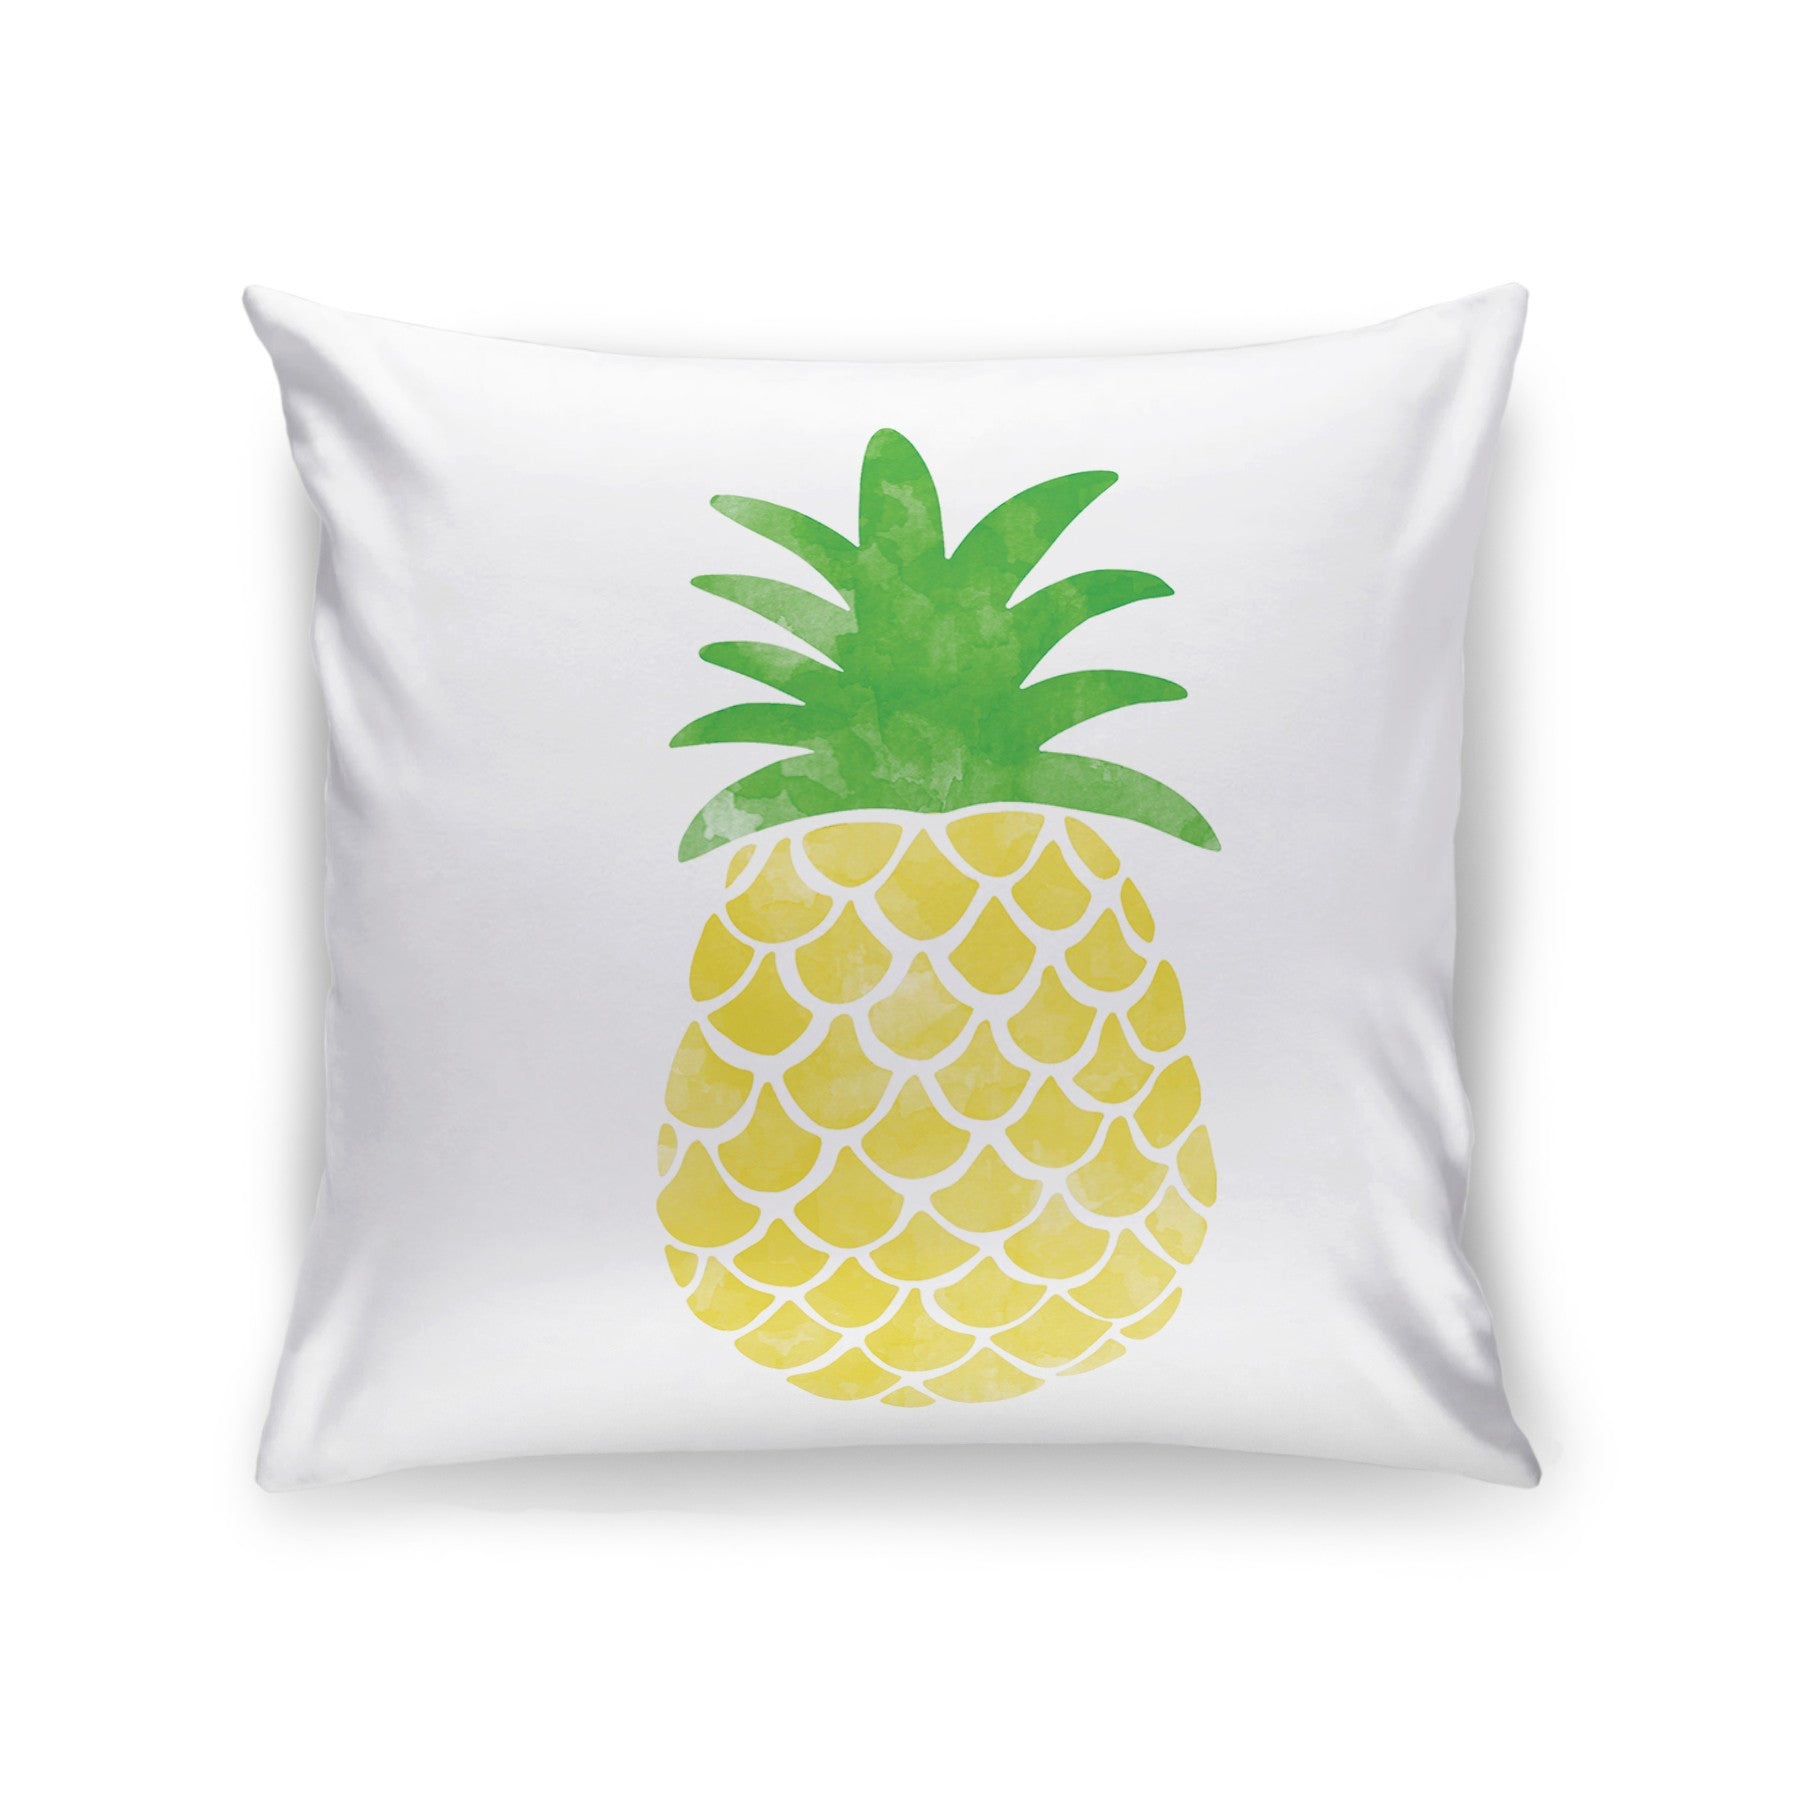 home both nero style pastoral seat homewares furnishings yellow product green decoration zero sides mat cactus pillow shaped and printed pineapple cushion